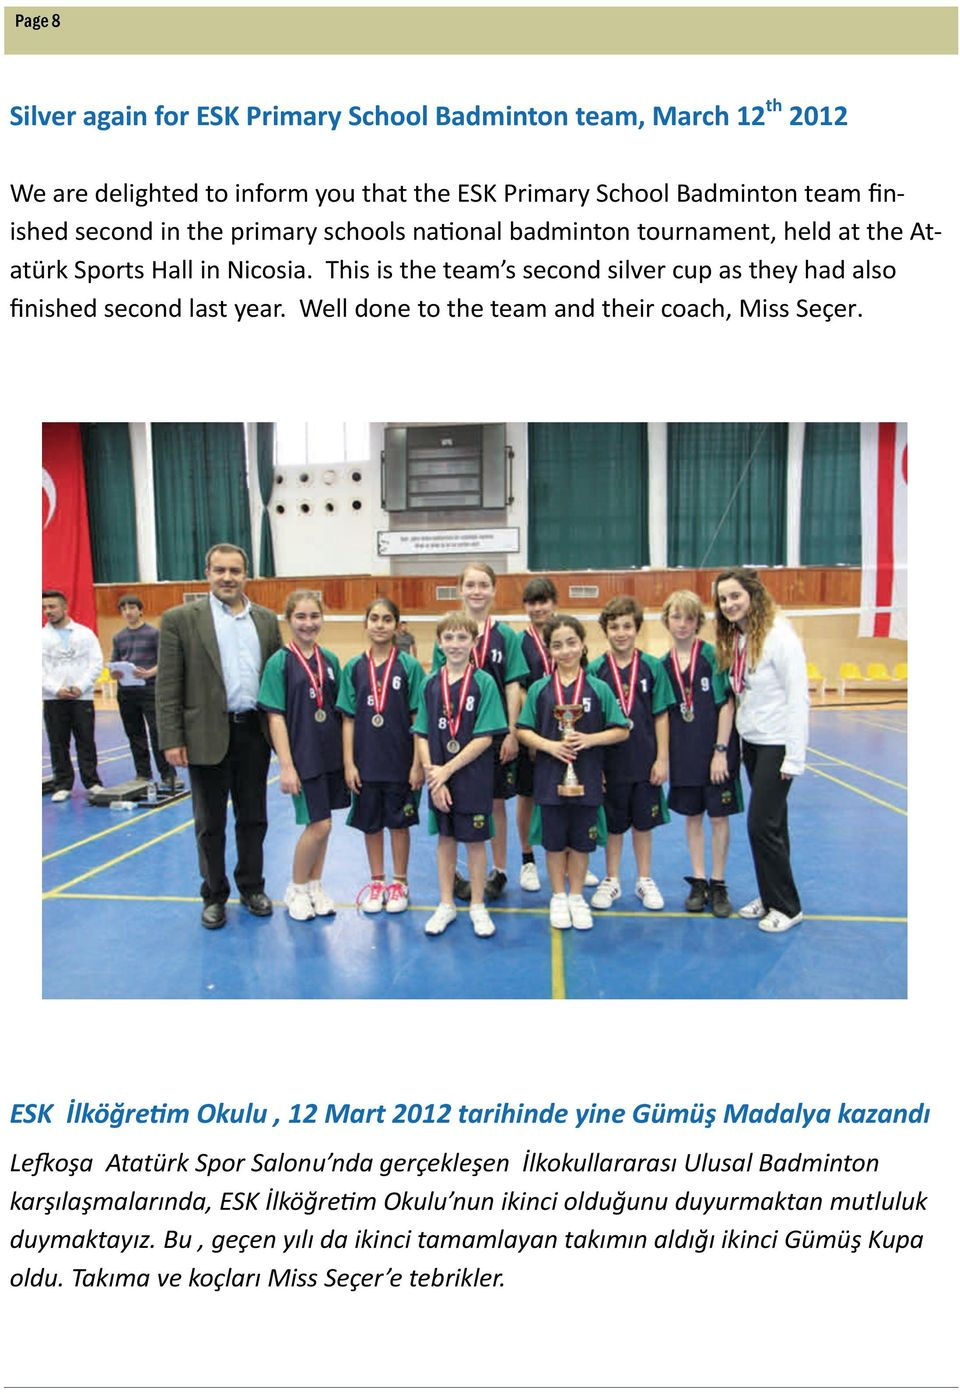 Well done to the team and their coach, Miss Seçer.